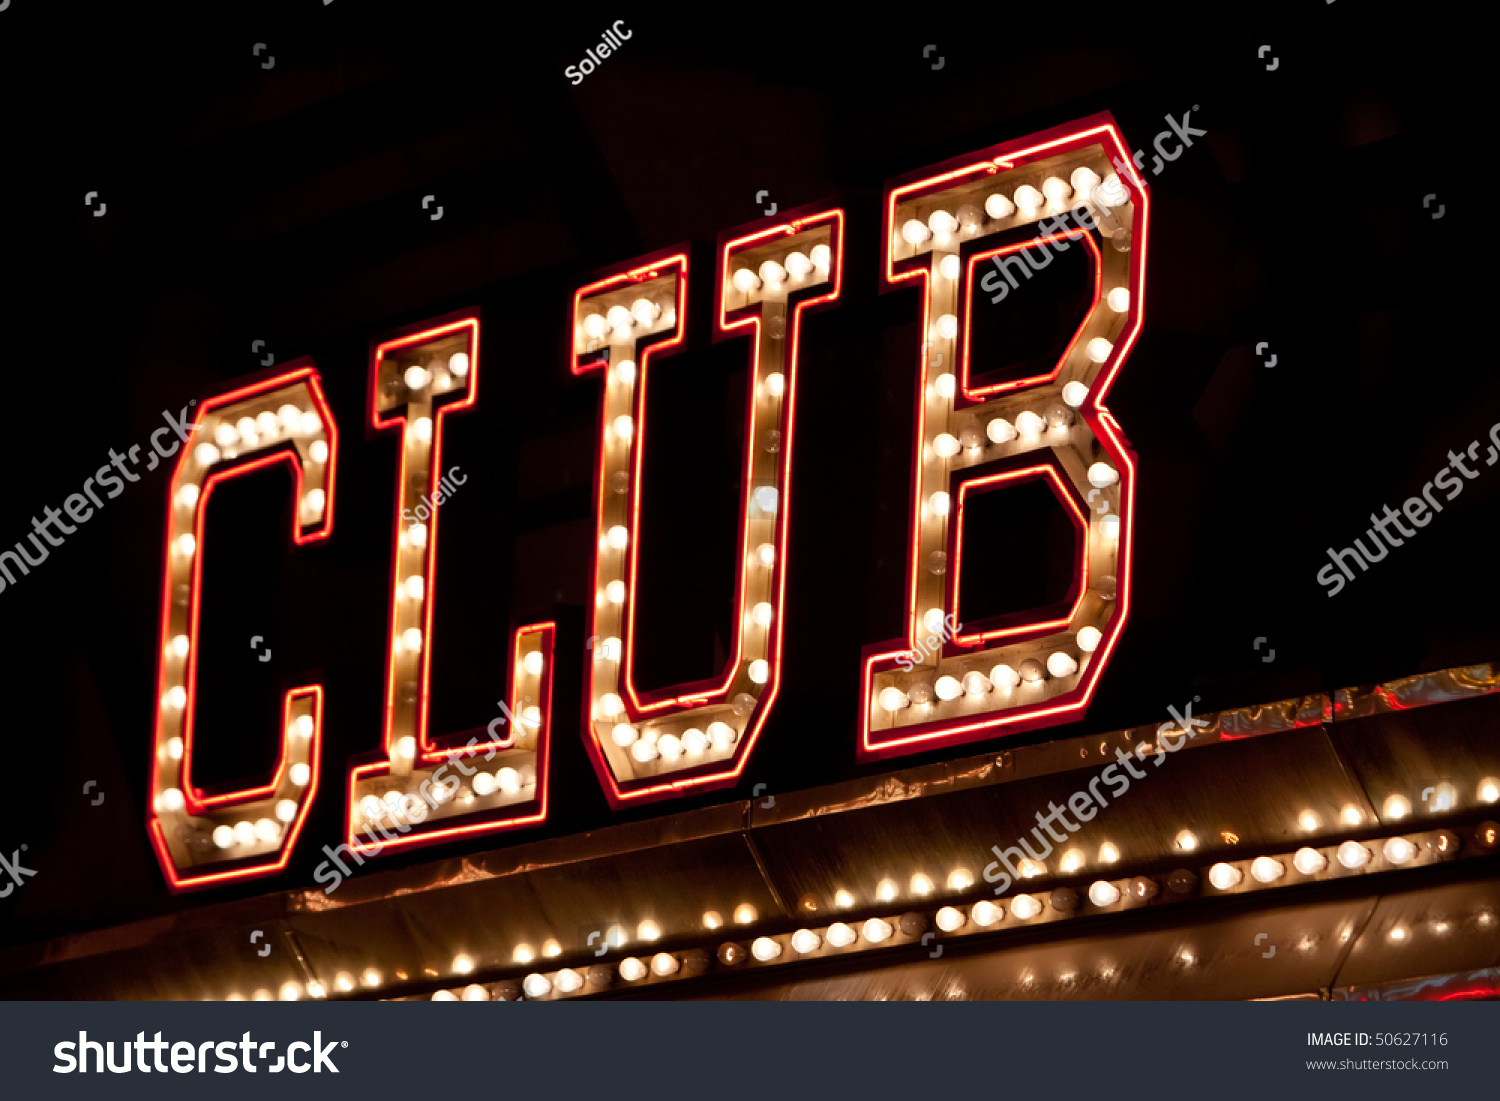 Neon Lights Club Sign Stock Photo 50627116 - Shutterstock